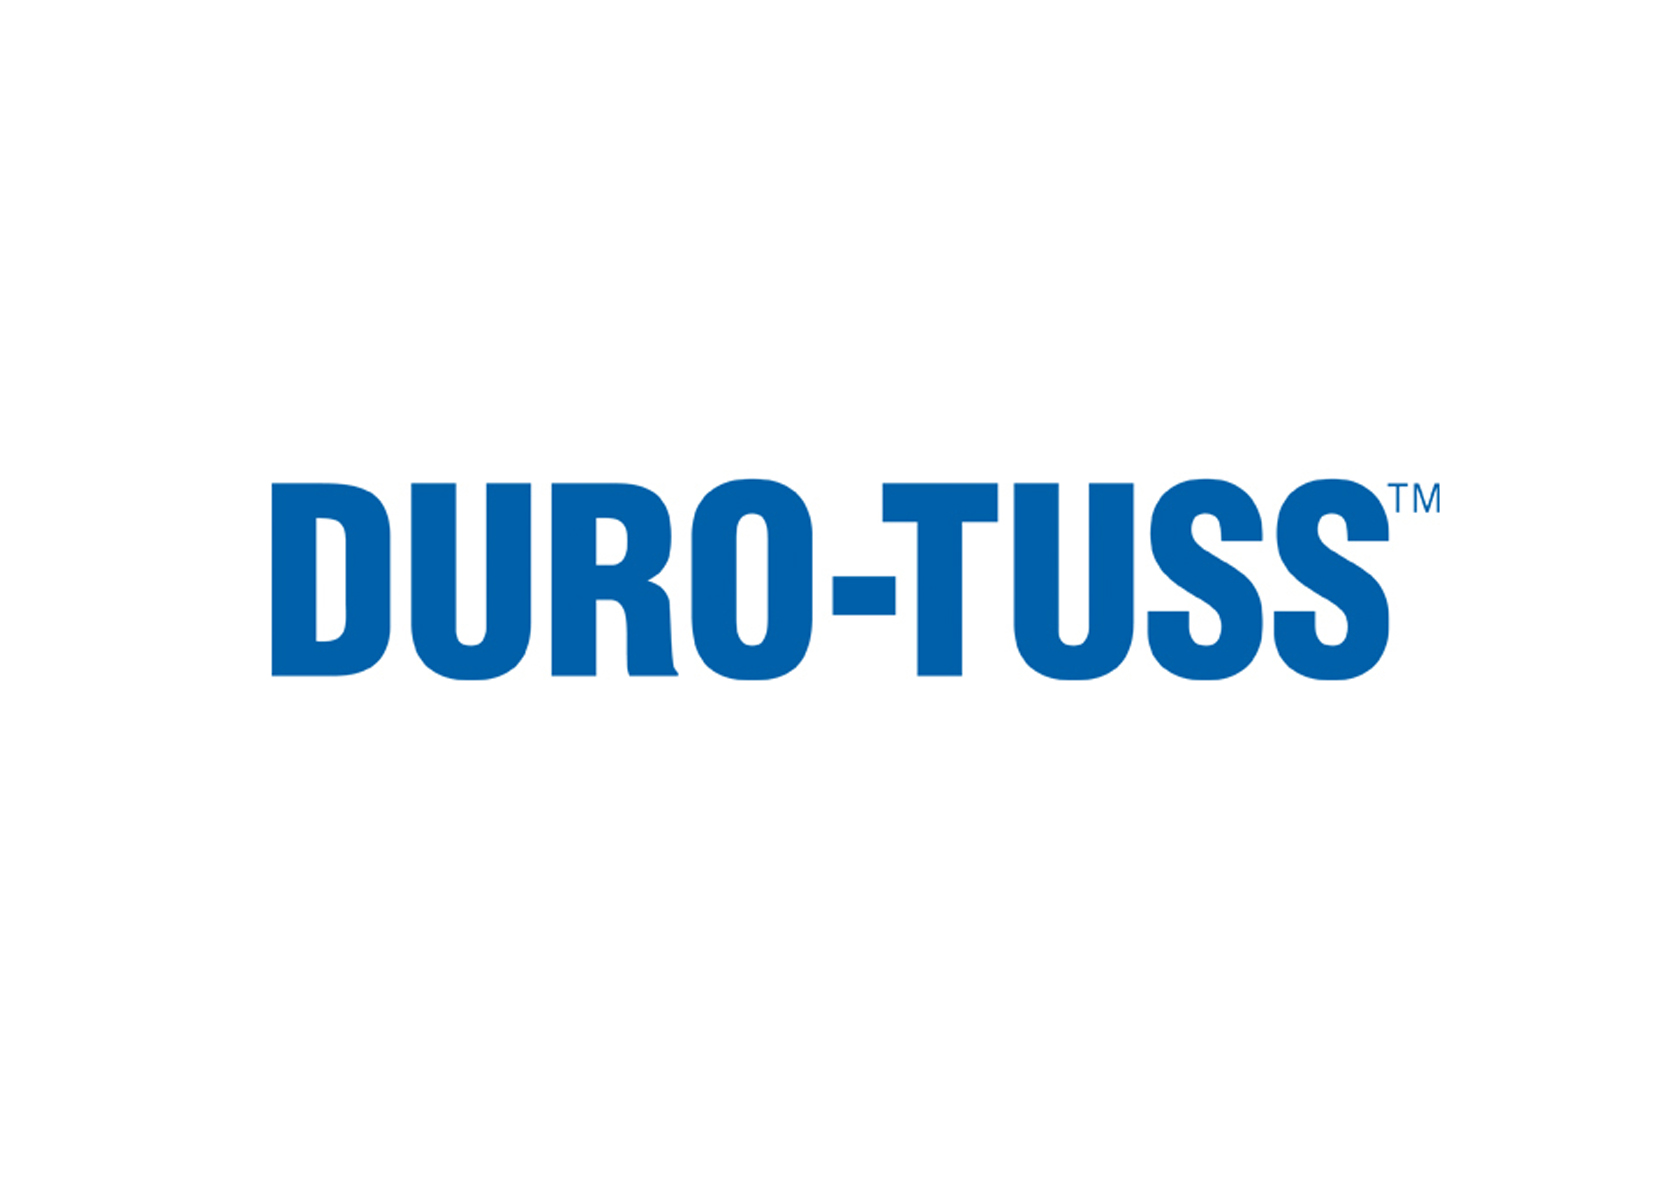 highway brands new 1_0001_duro-tuss.jpg